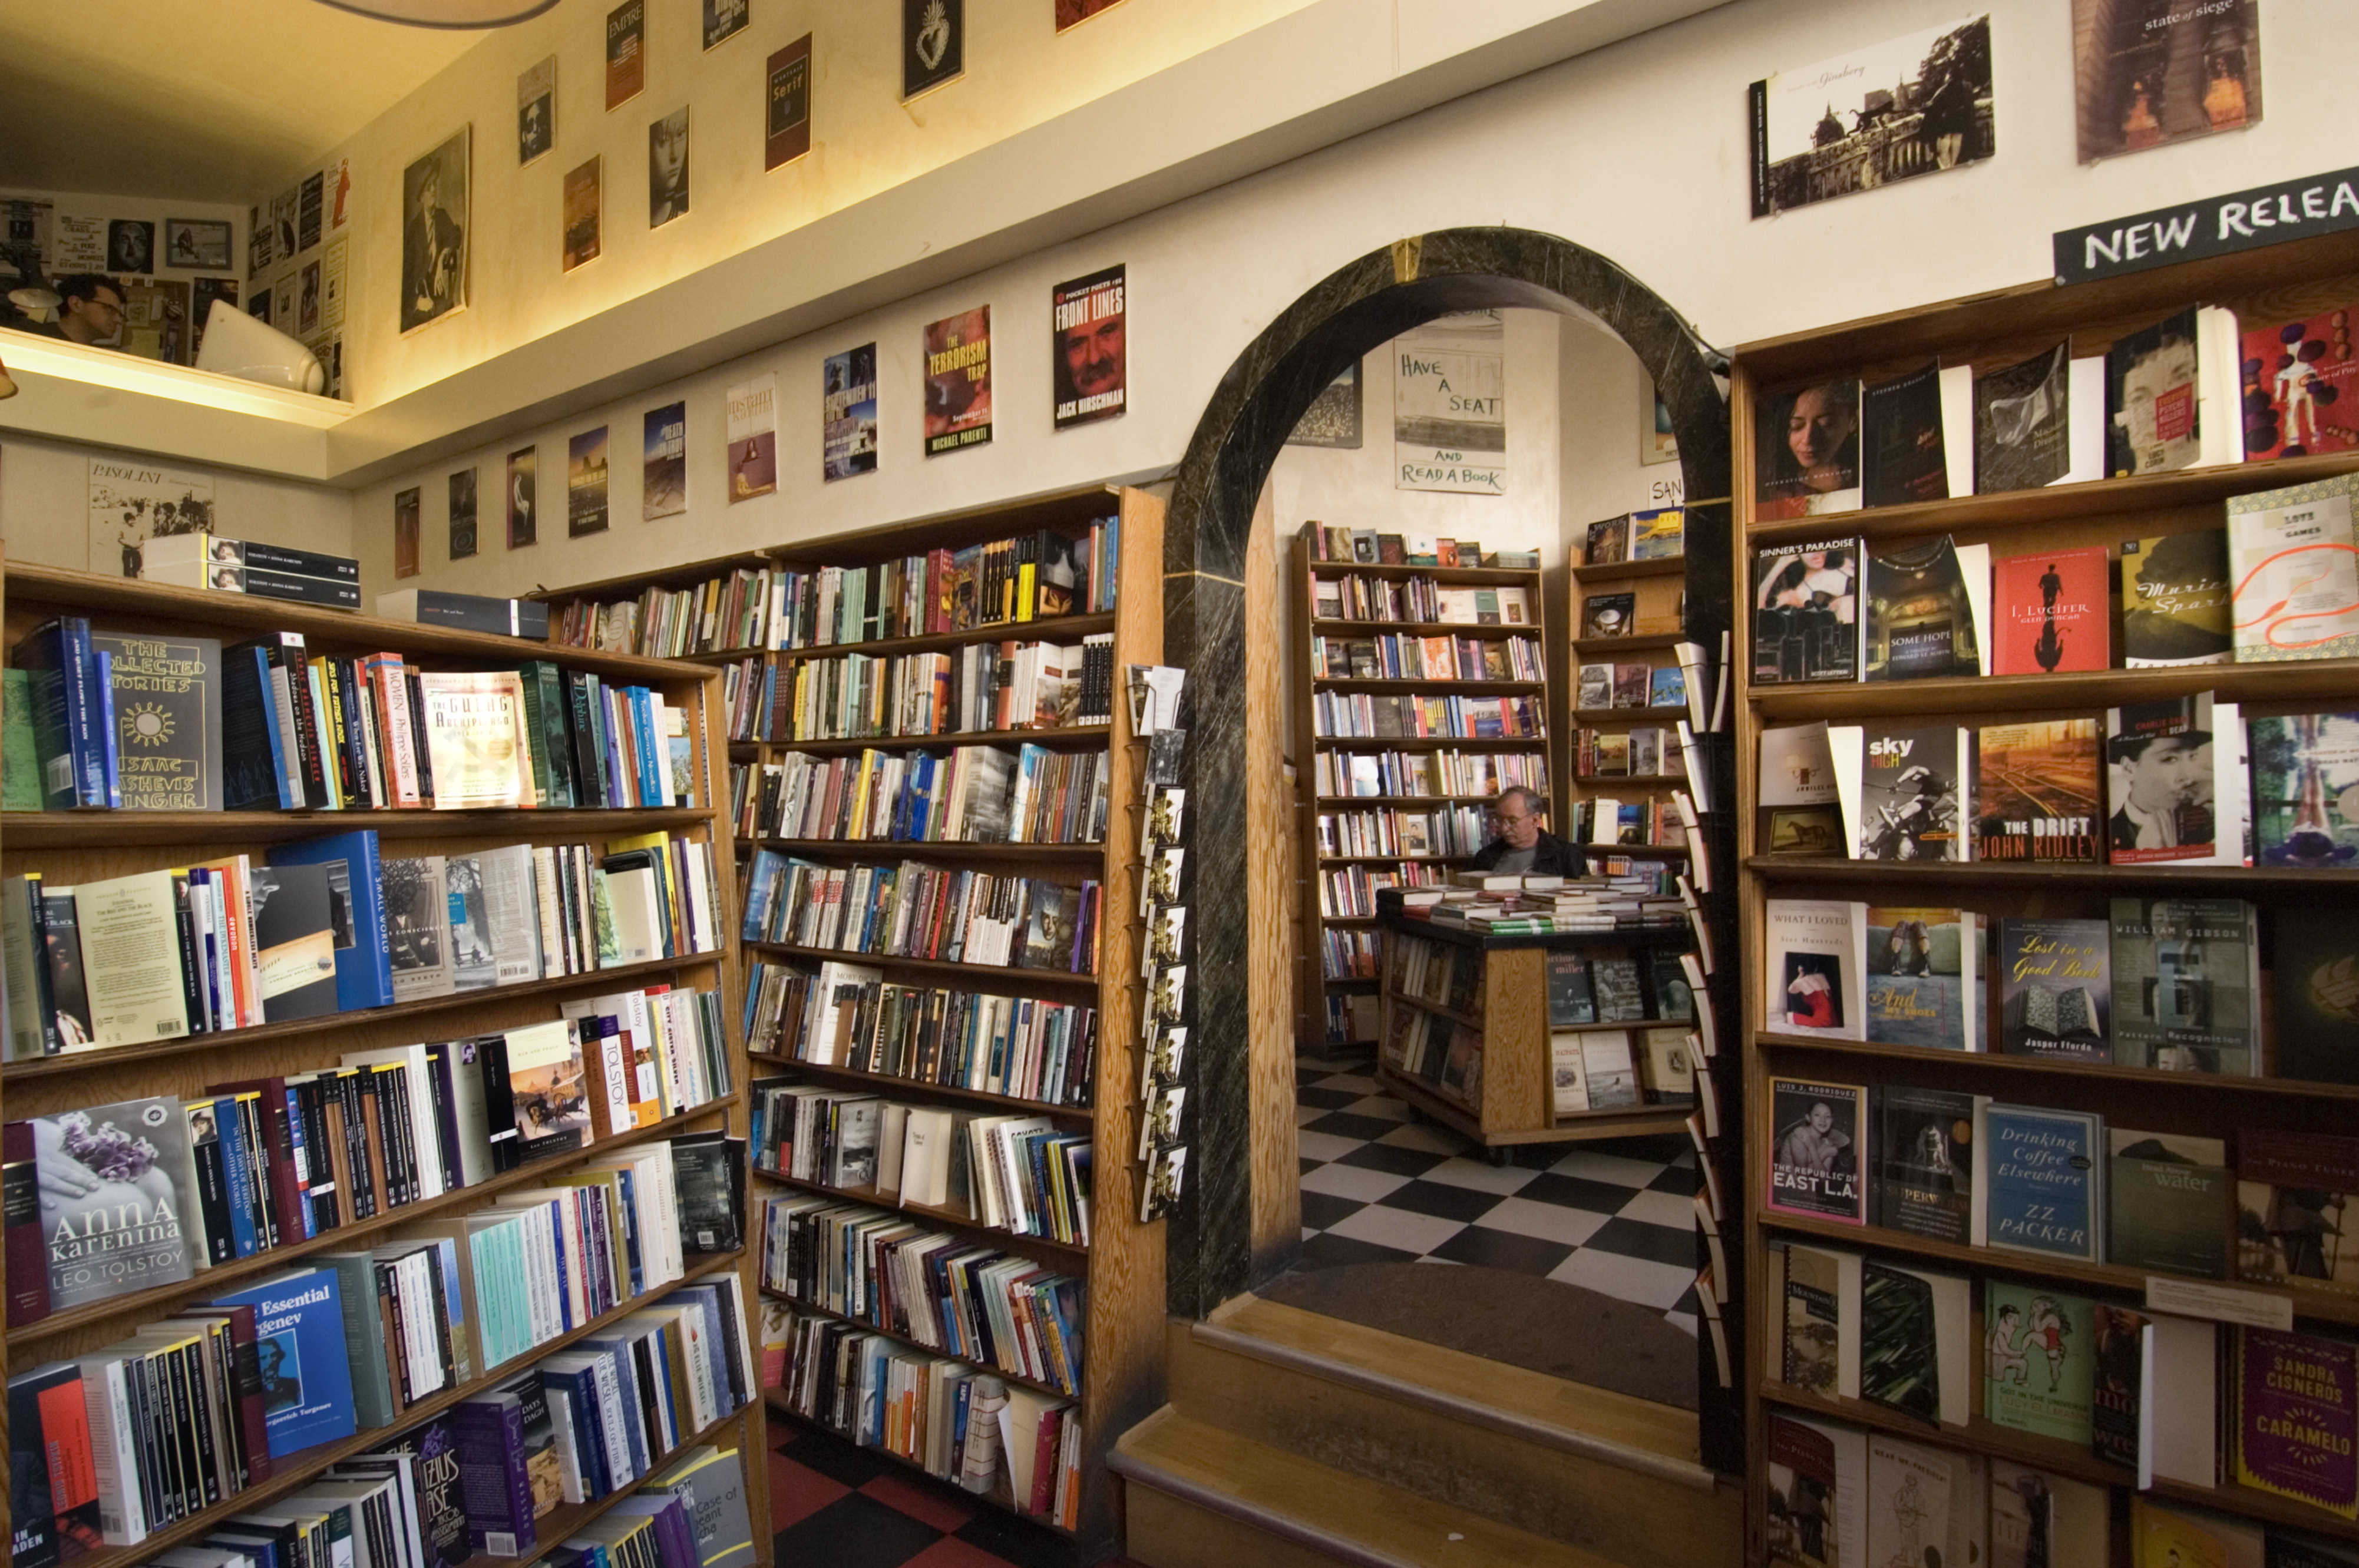 City Lights Bookstore interior.